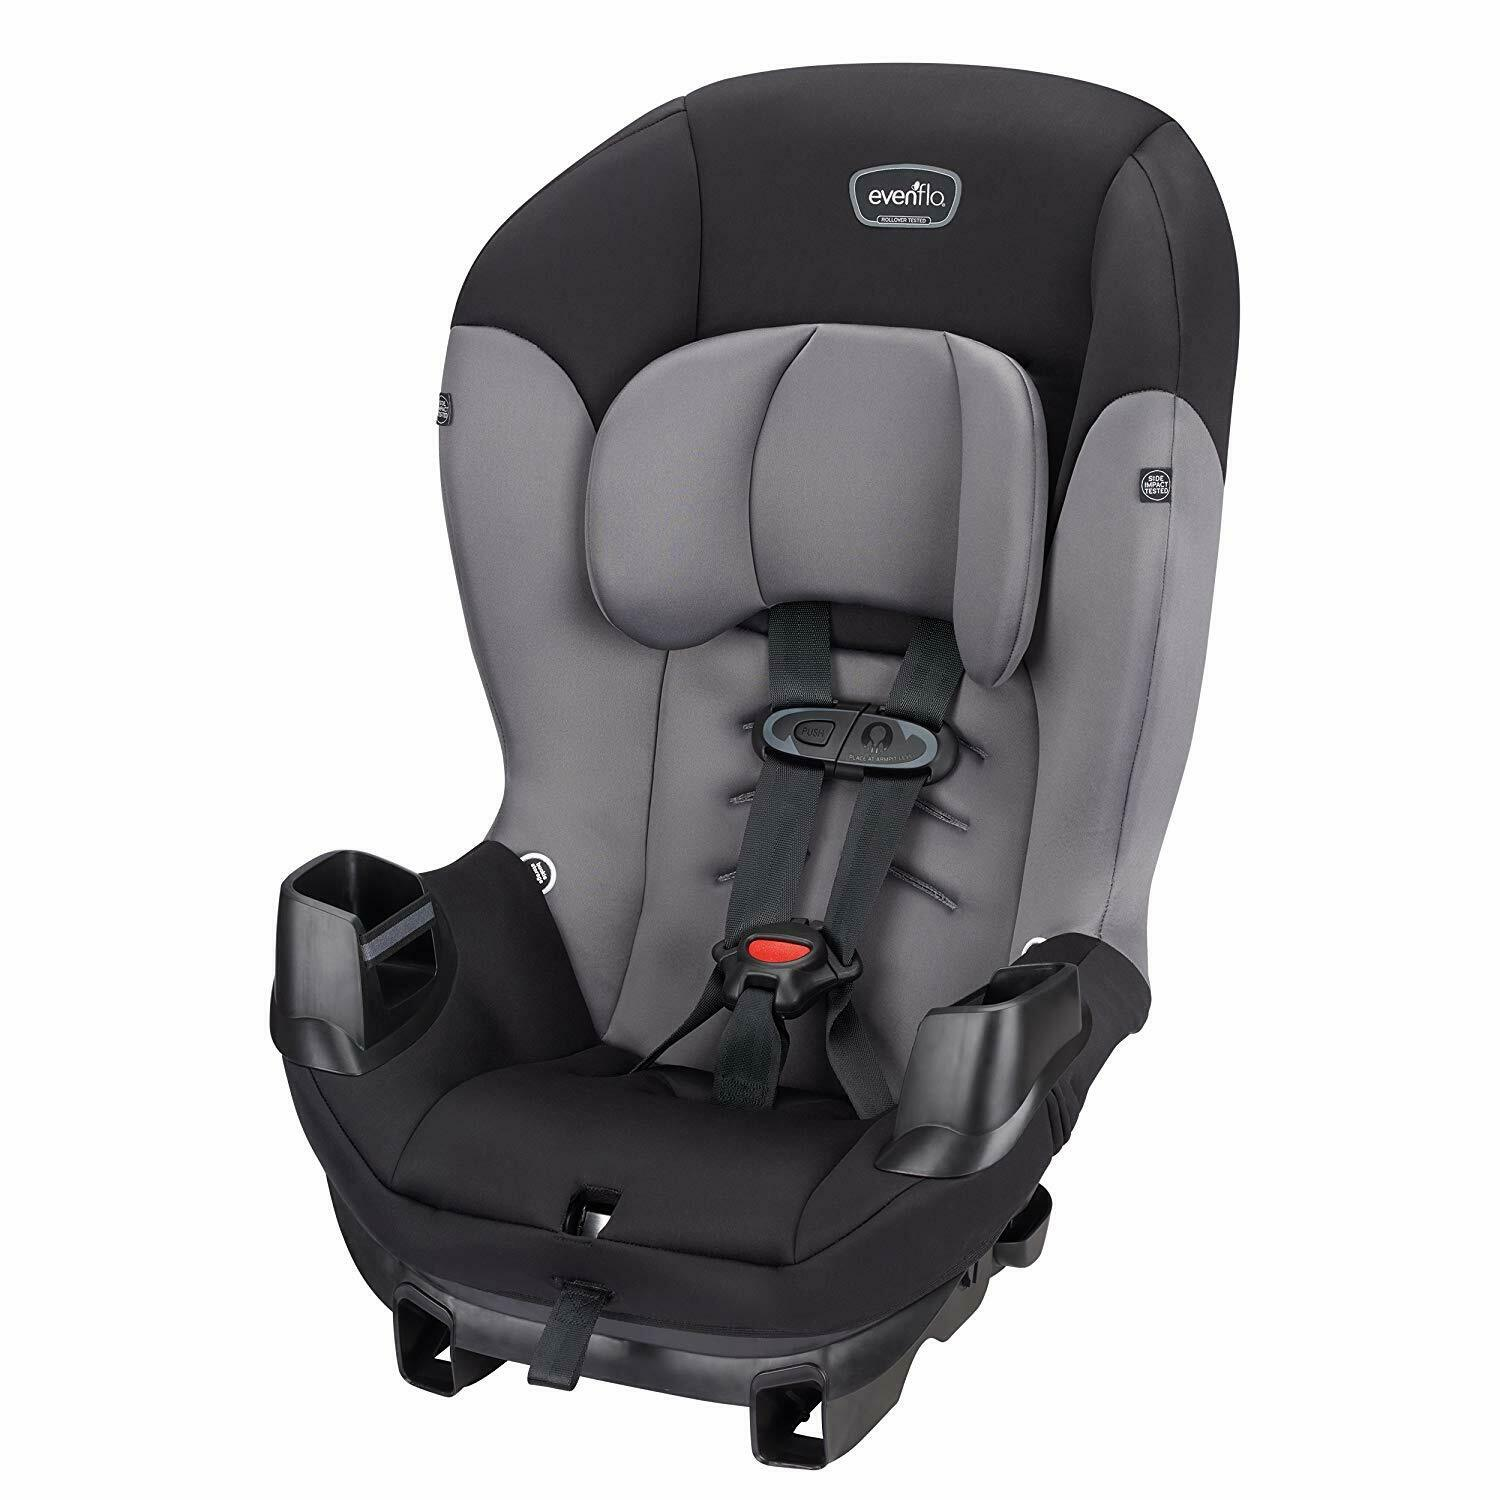 Evenflo Sonus Convertible Car Seat, Charcoal Sky Safety 3DAY